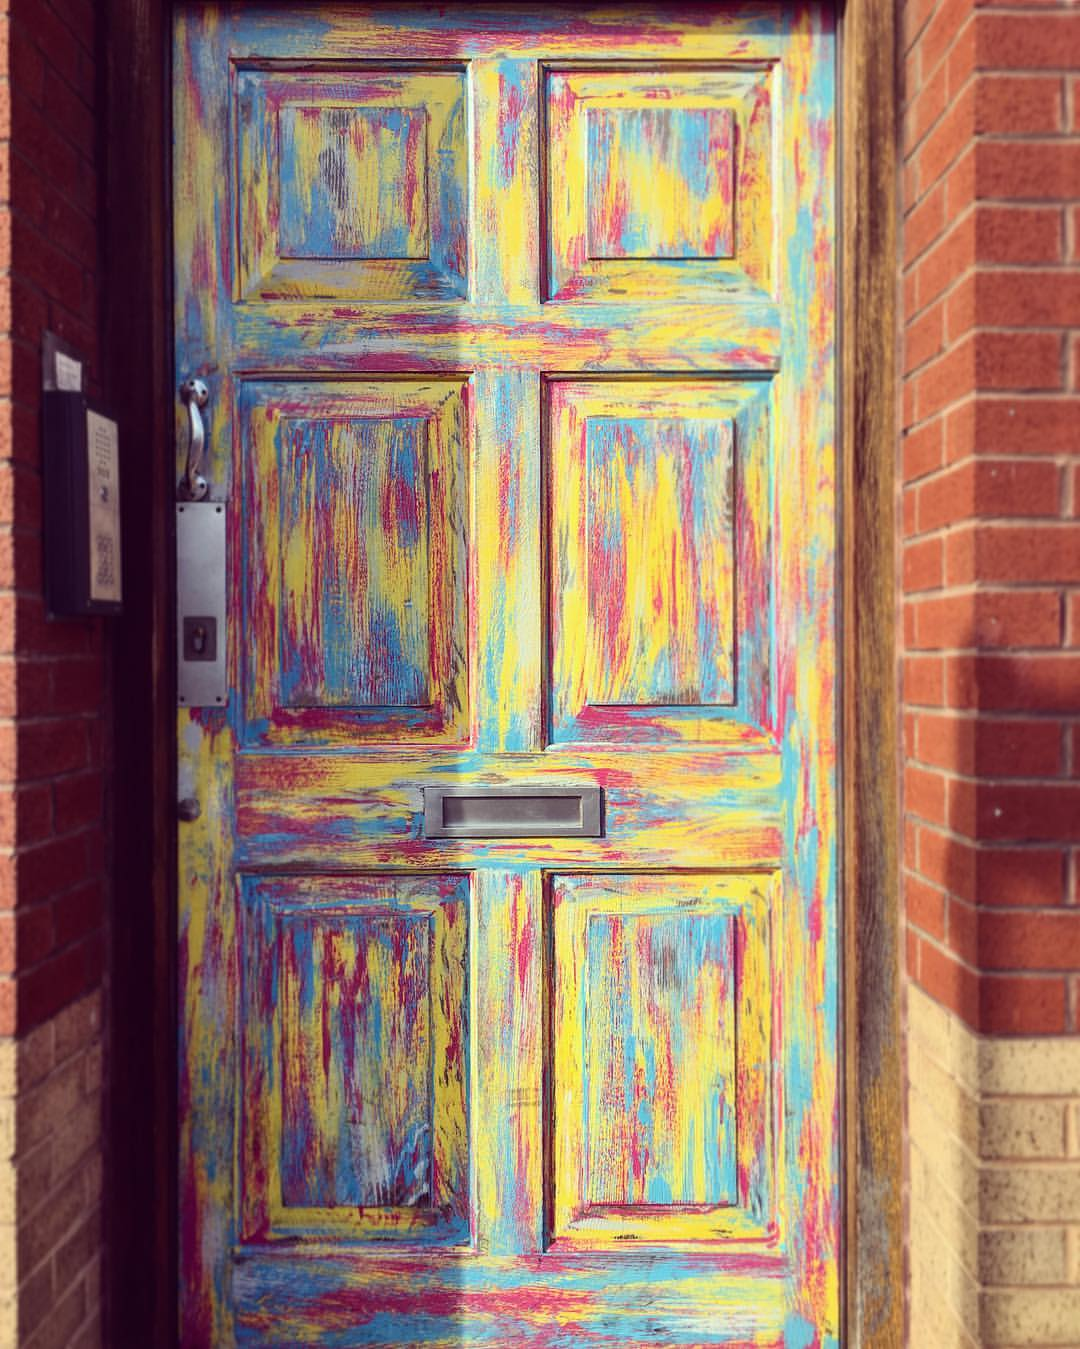 Colourful door of Redbrick House, Stokes Croft, Bristol